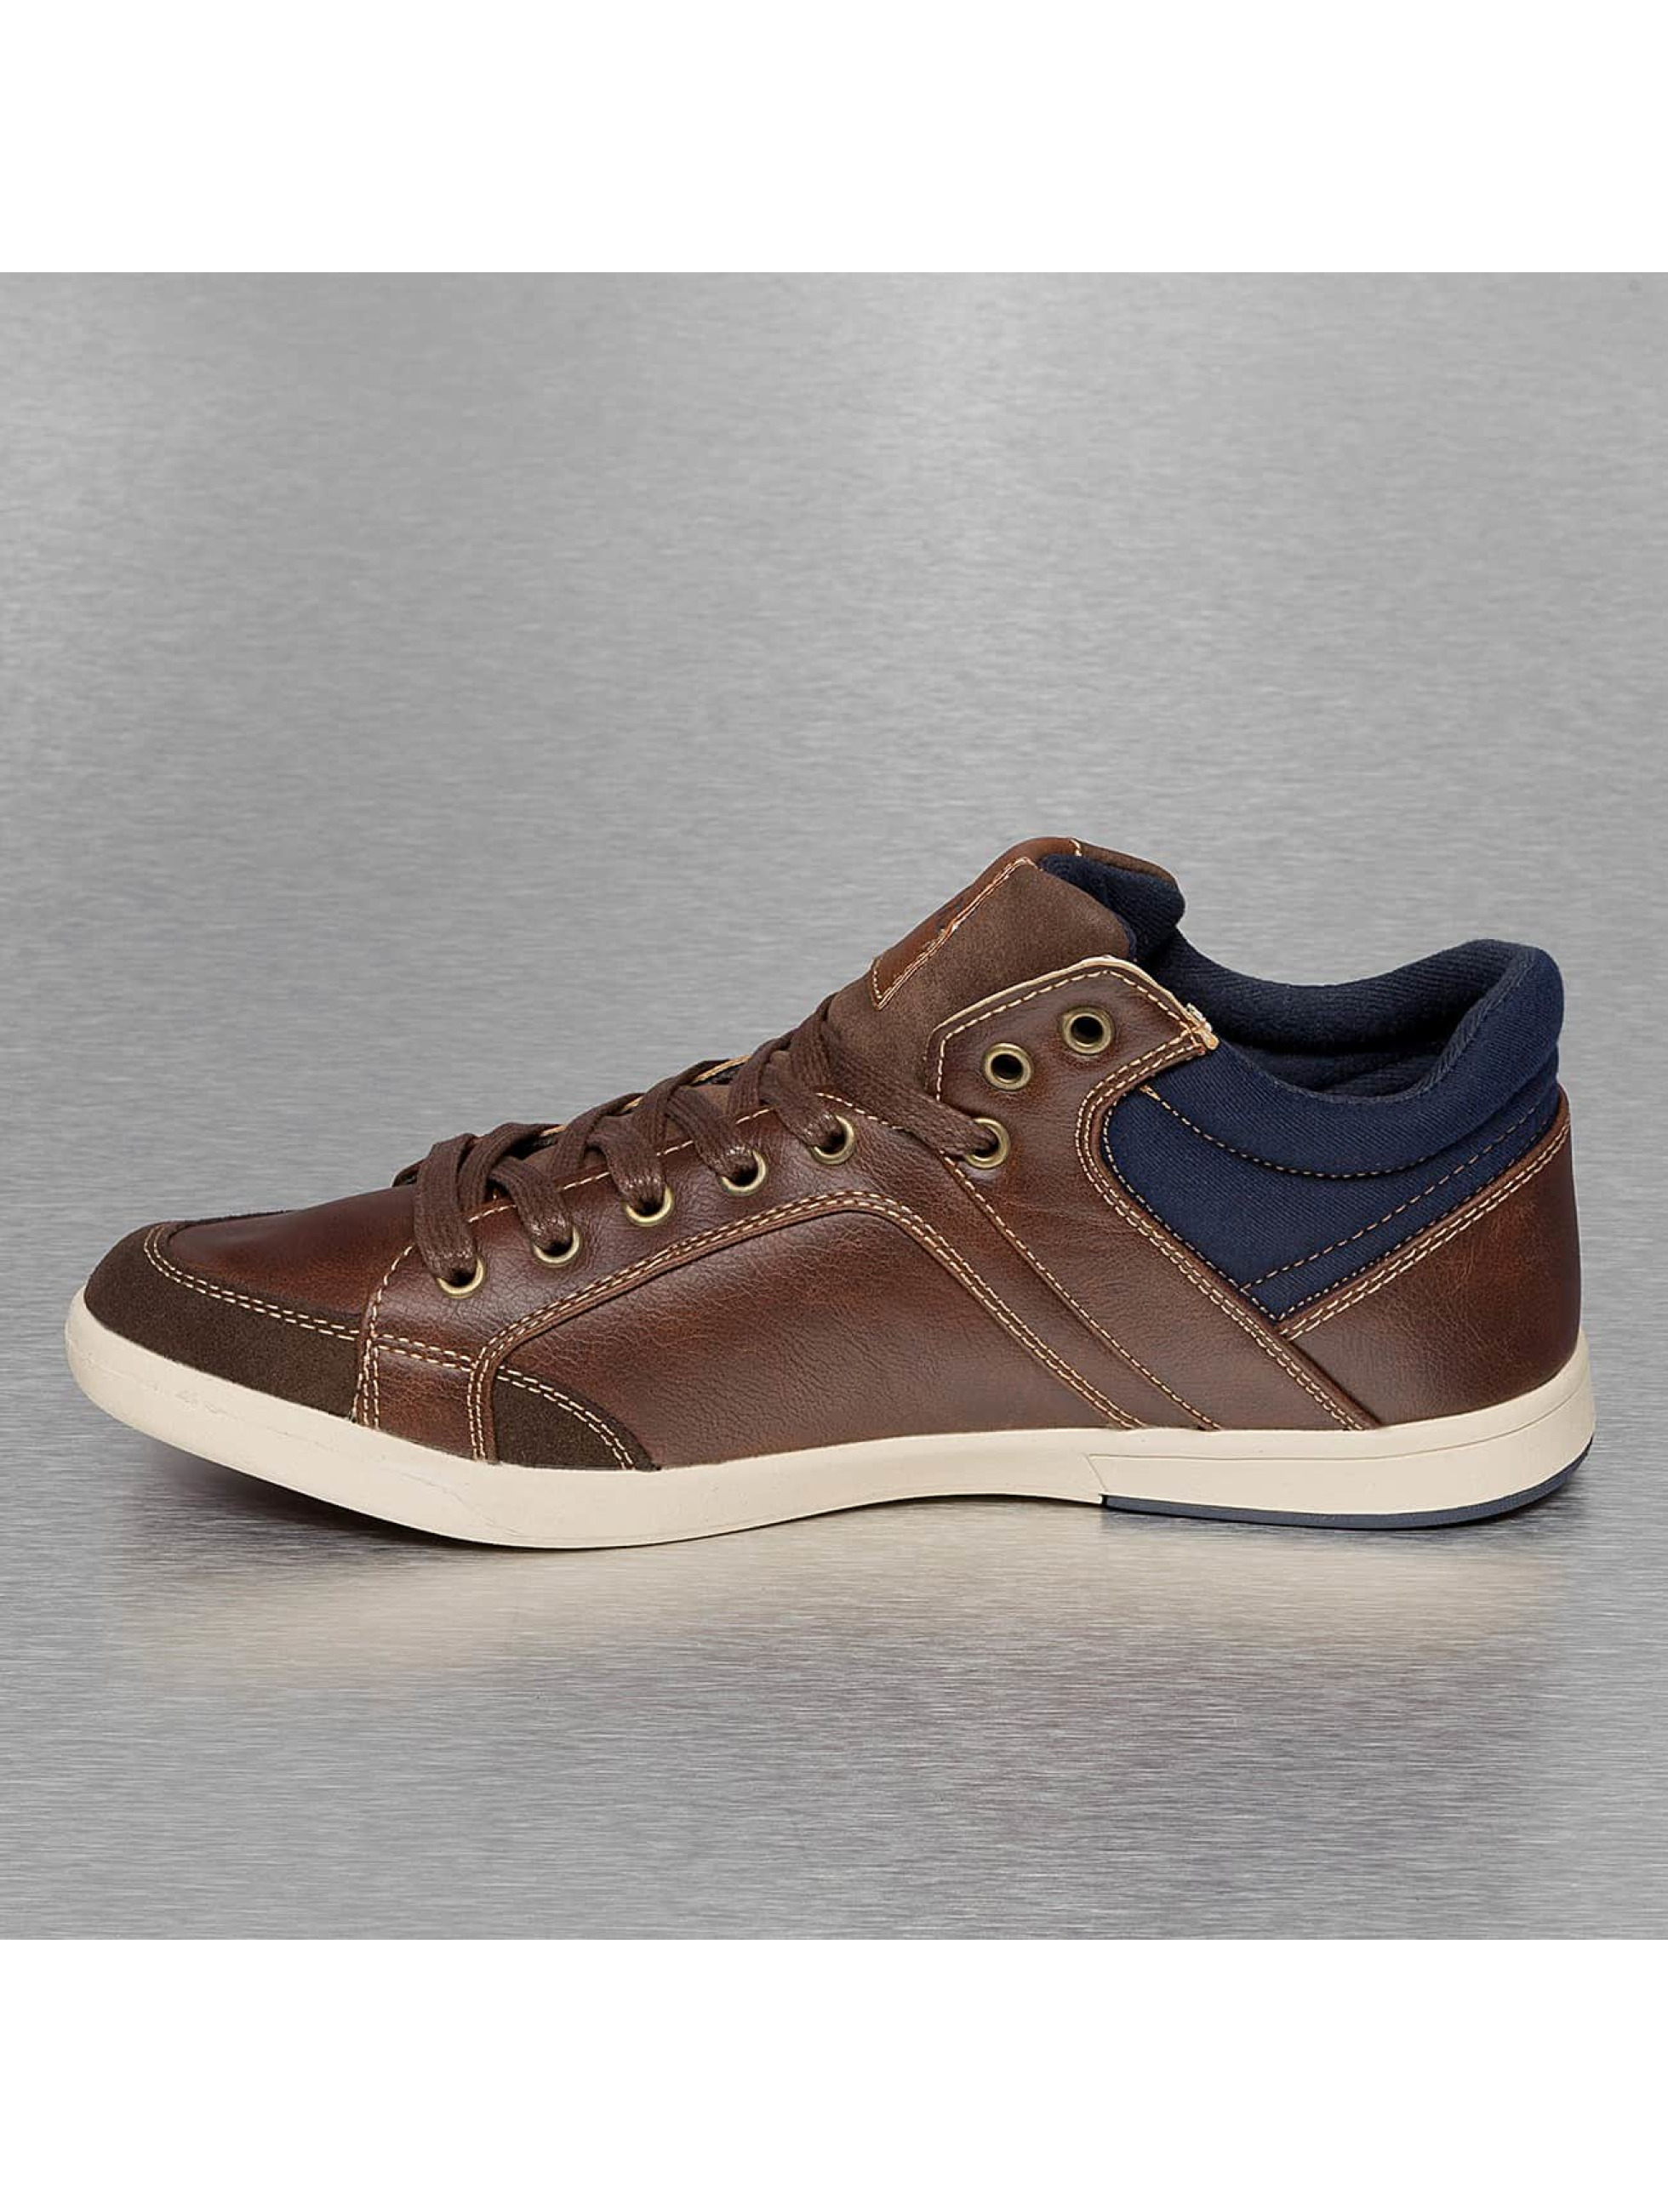 New York Style Sneakers Genua khaki